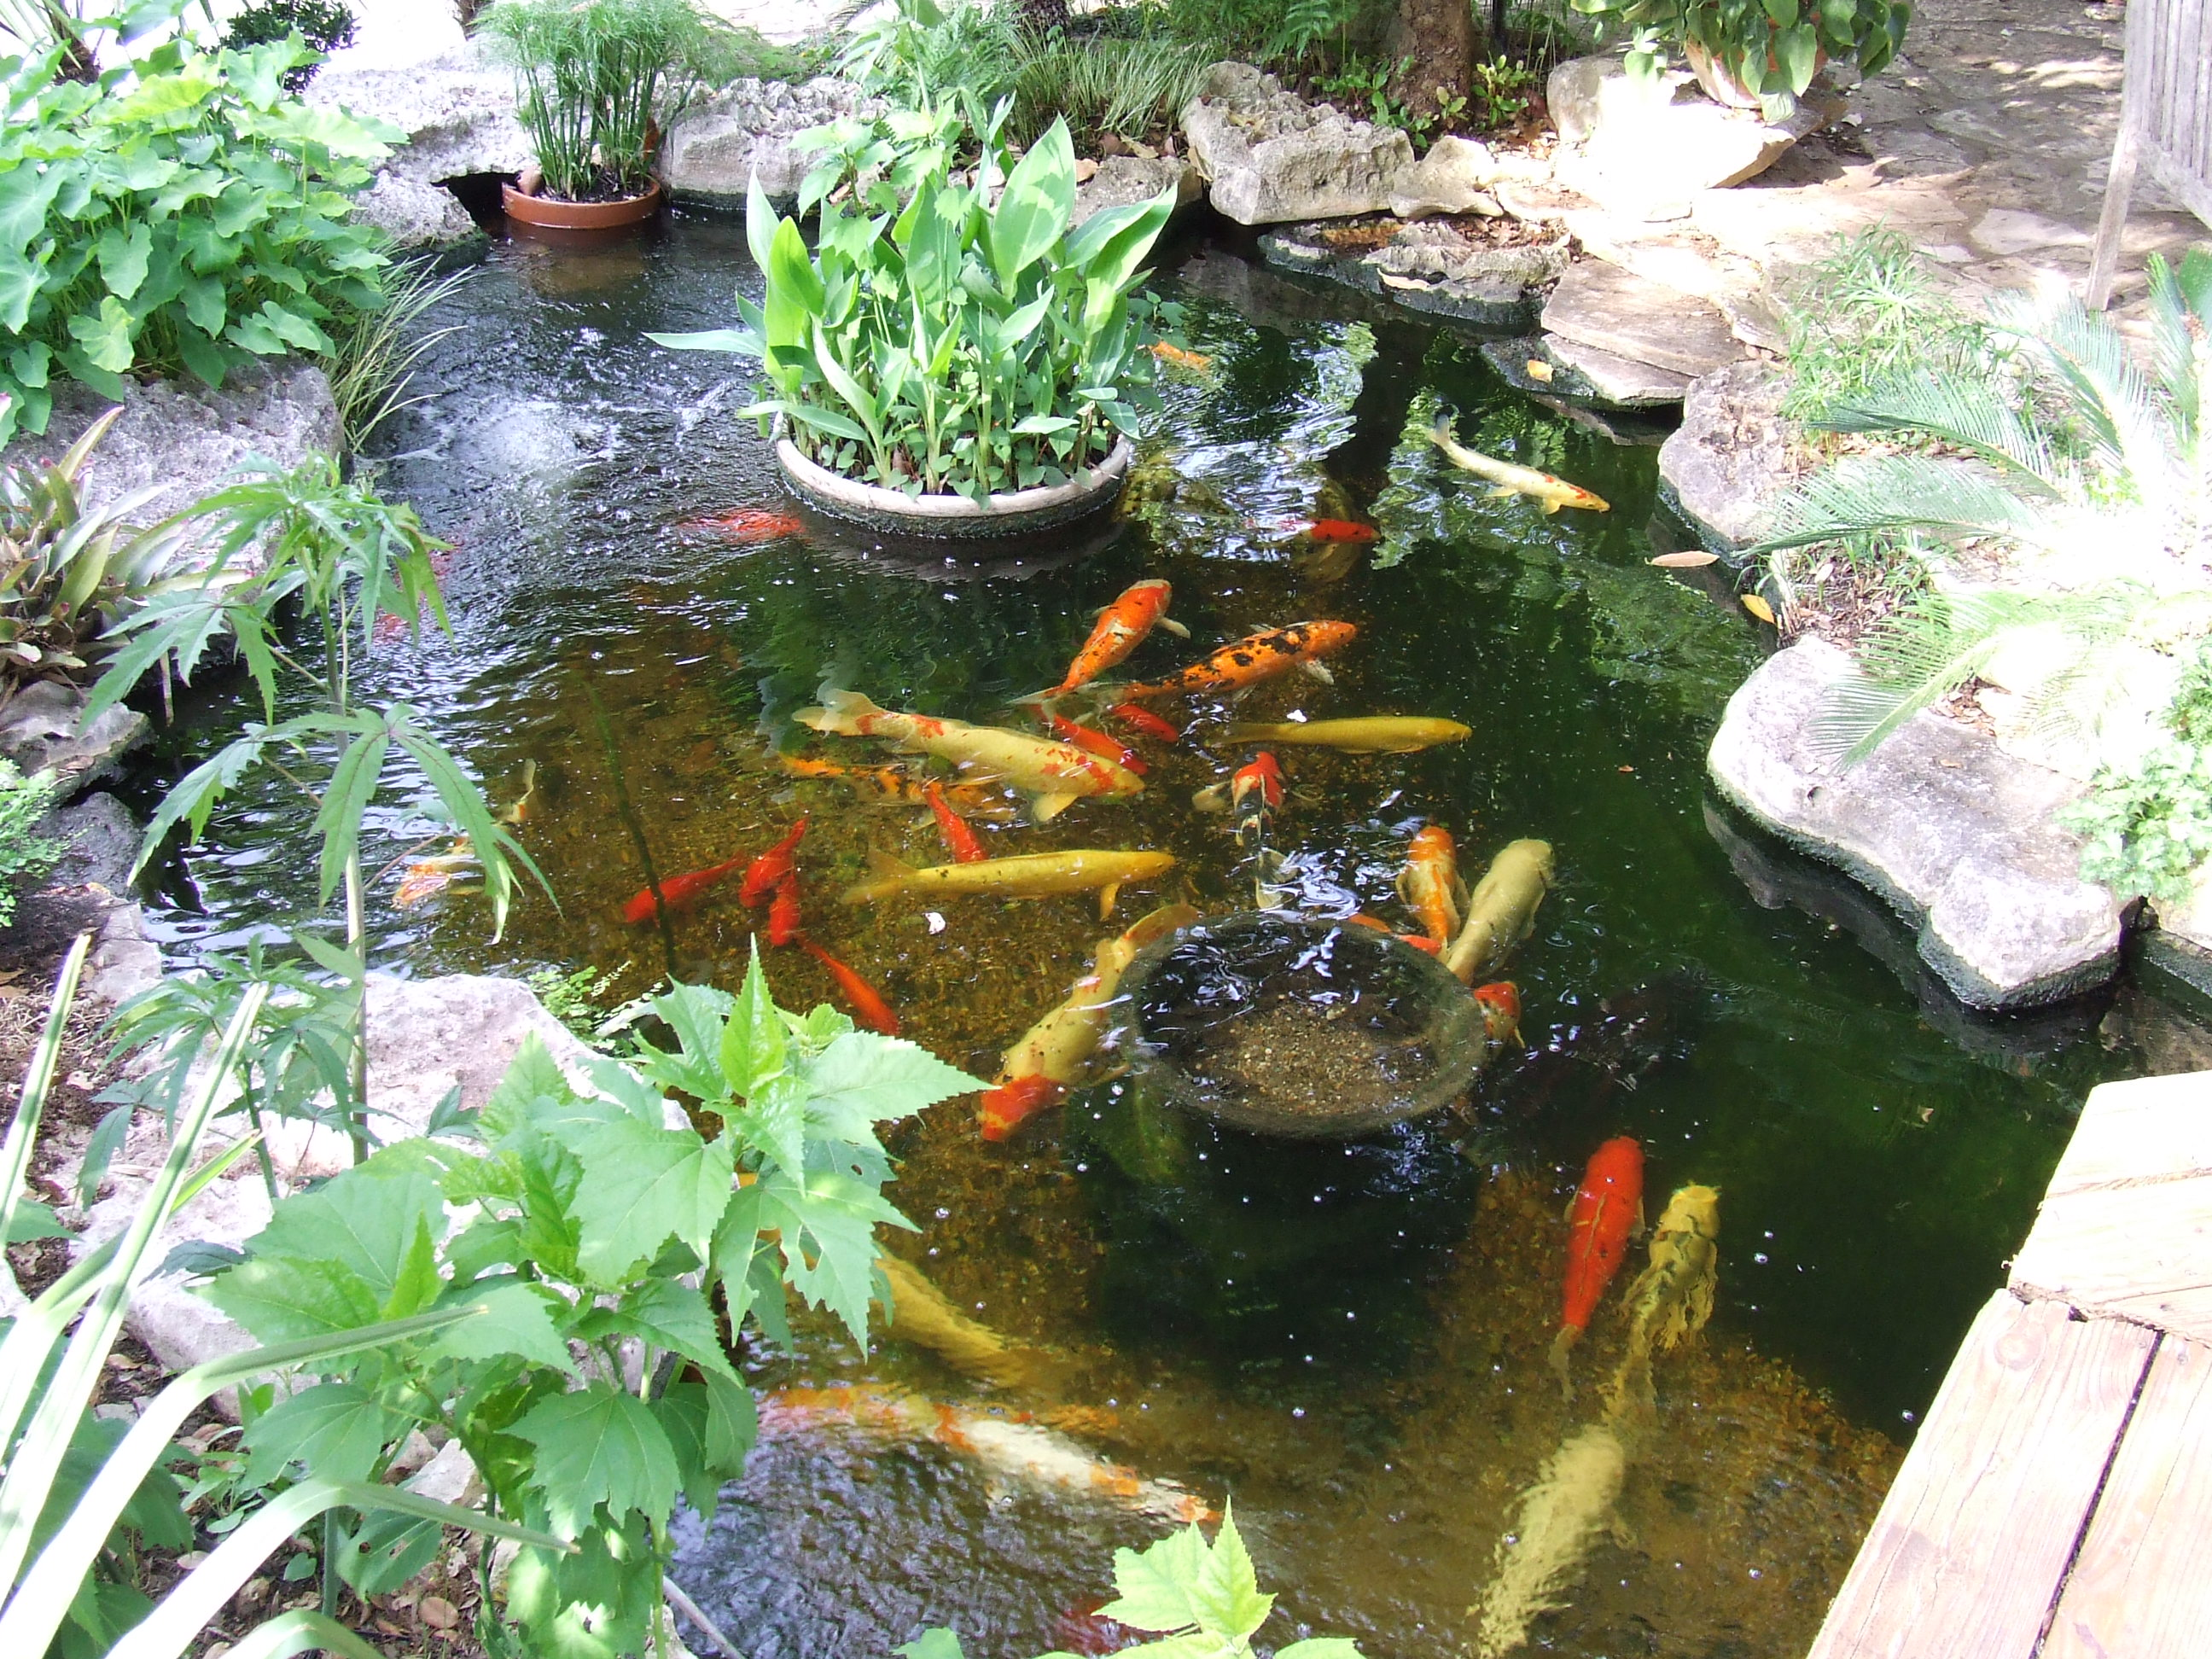 Koi filters koi pond systems with self cleaning filters for Self cleaning pond filter